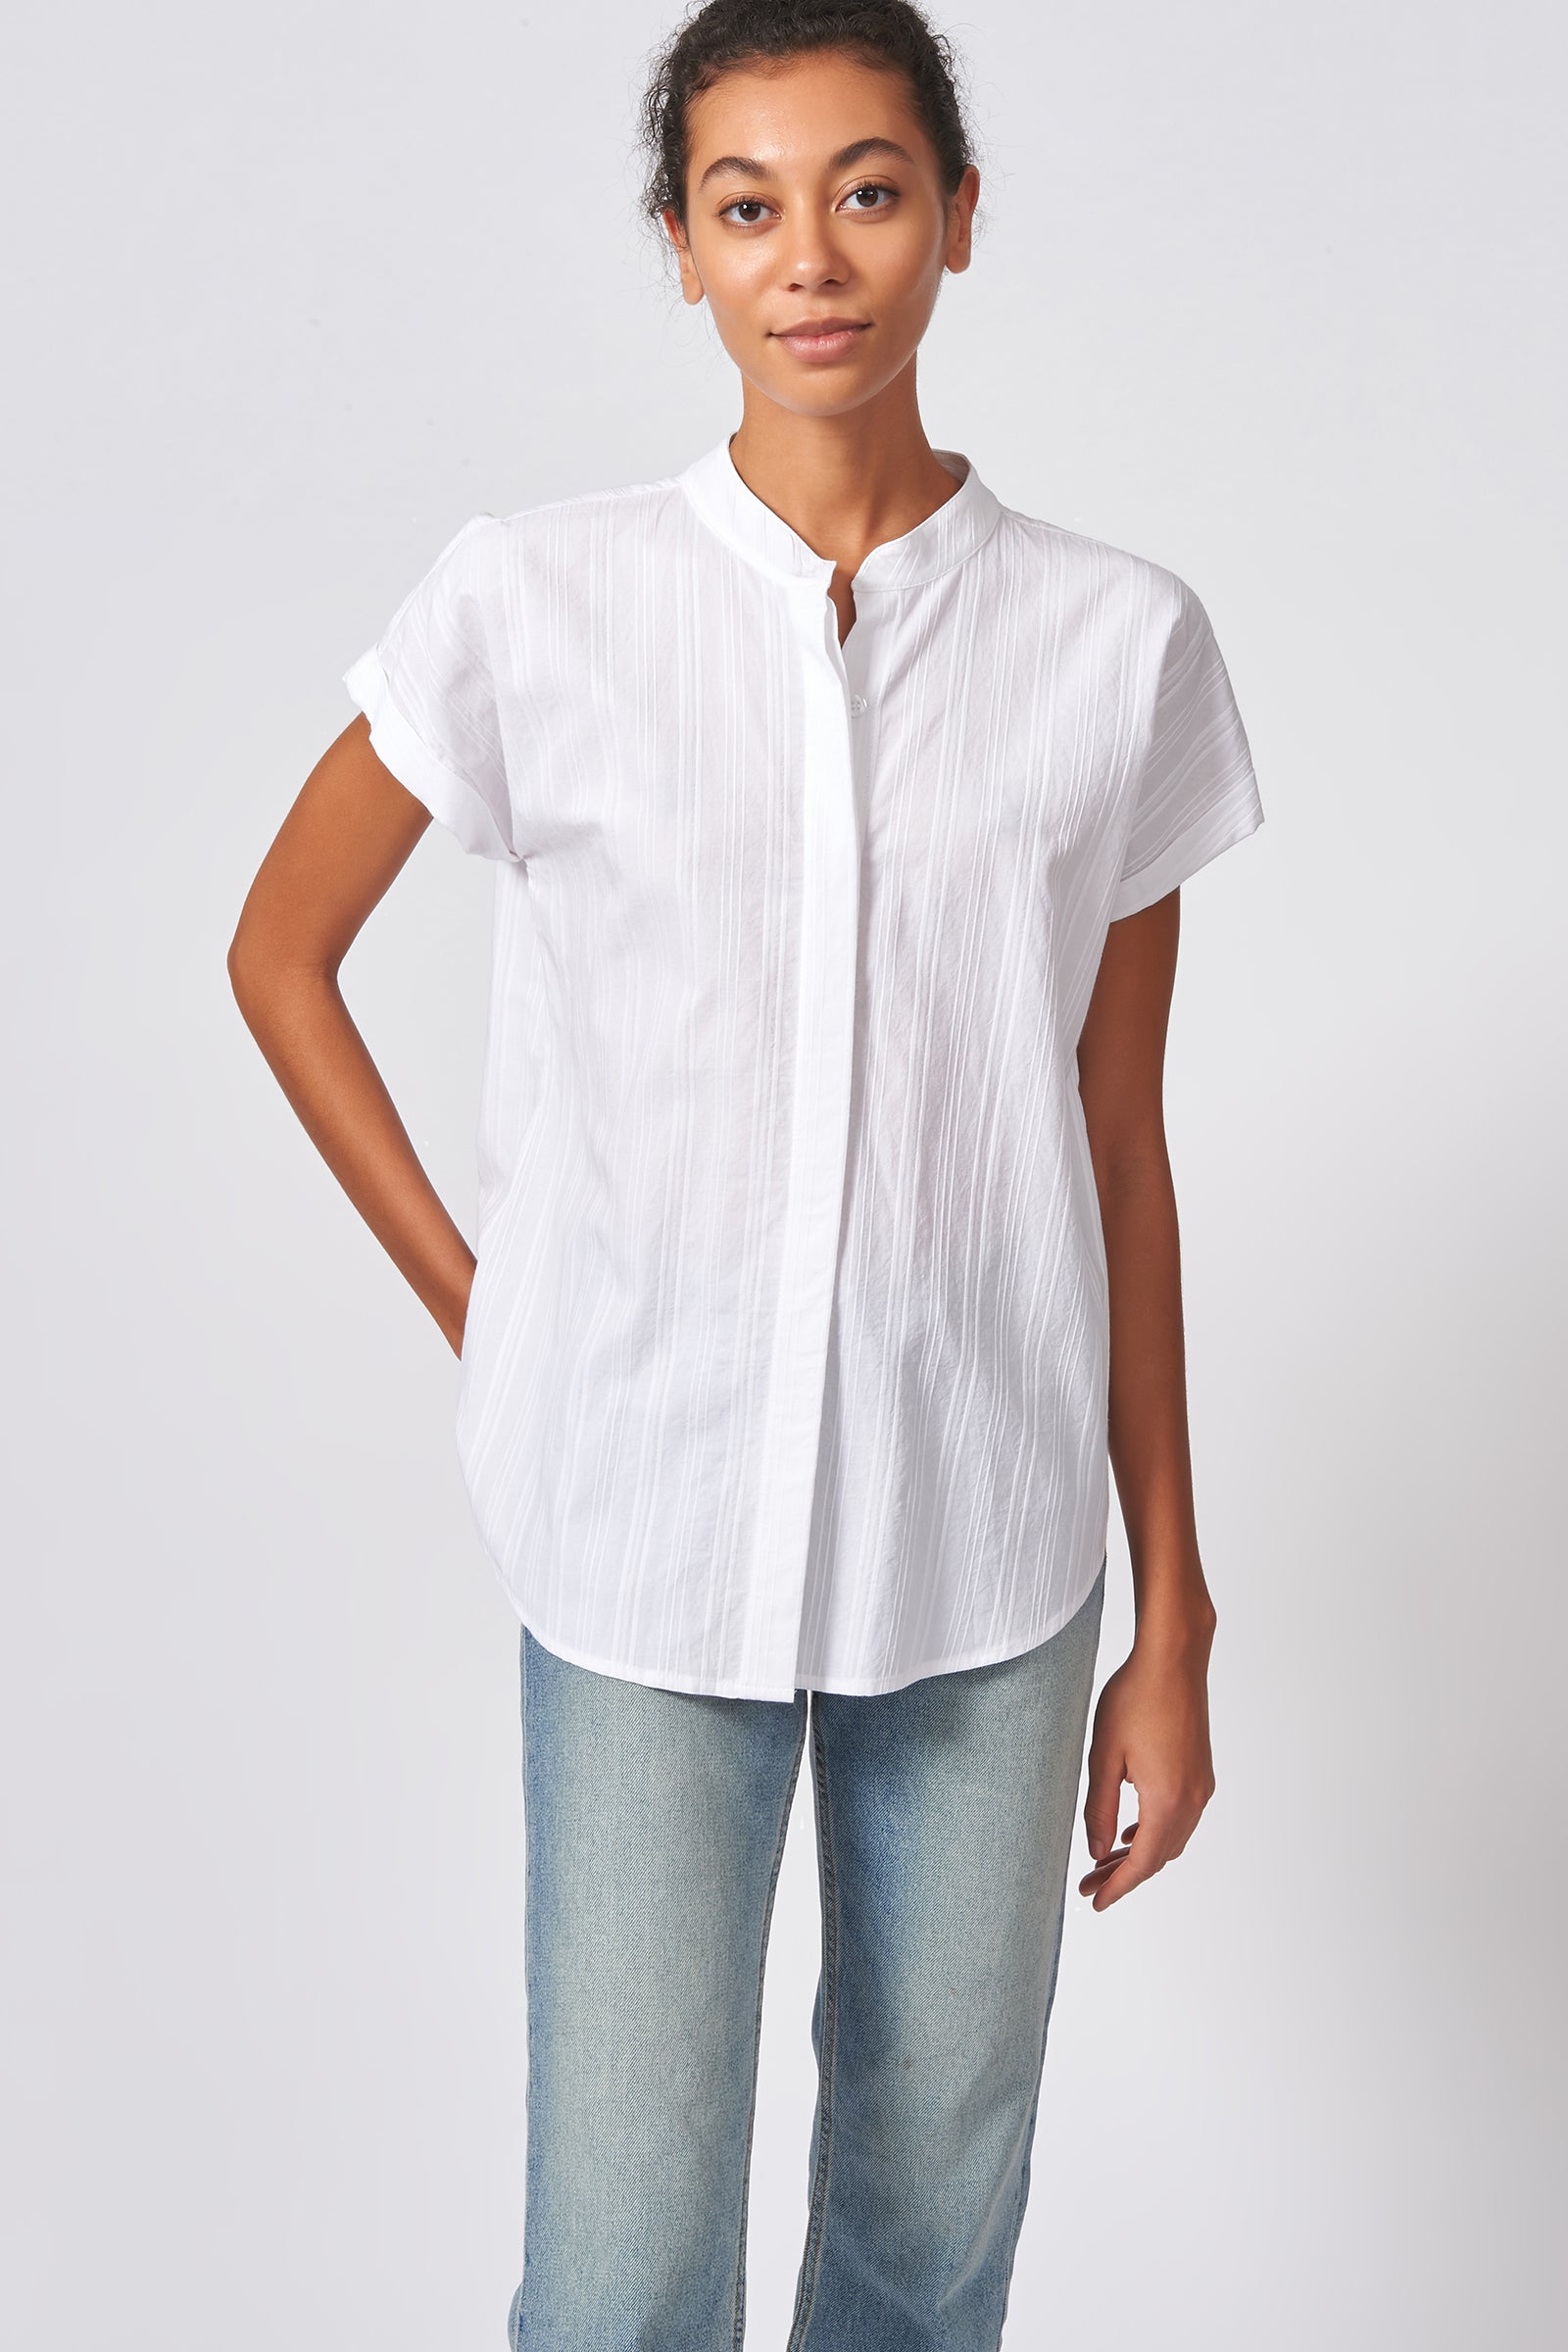 Kal Rieman Vent Back Collar Shirt in White Stripe on Model Front View